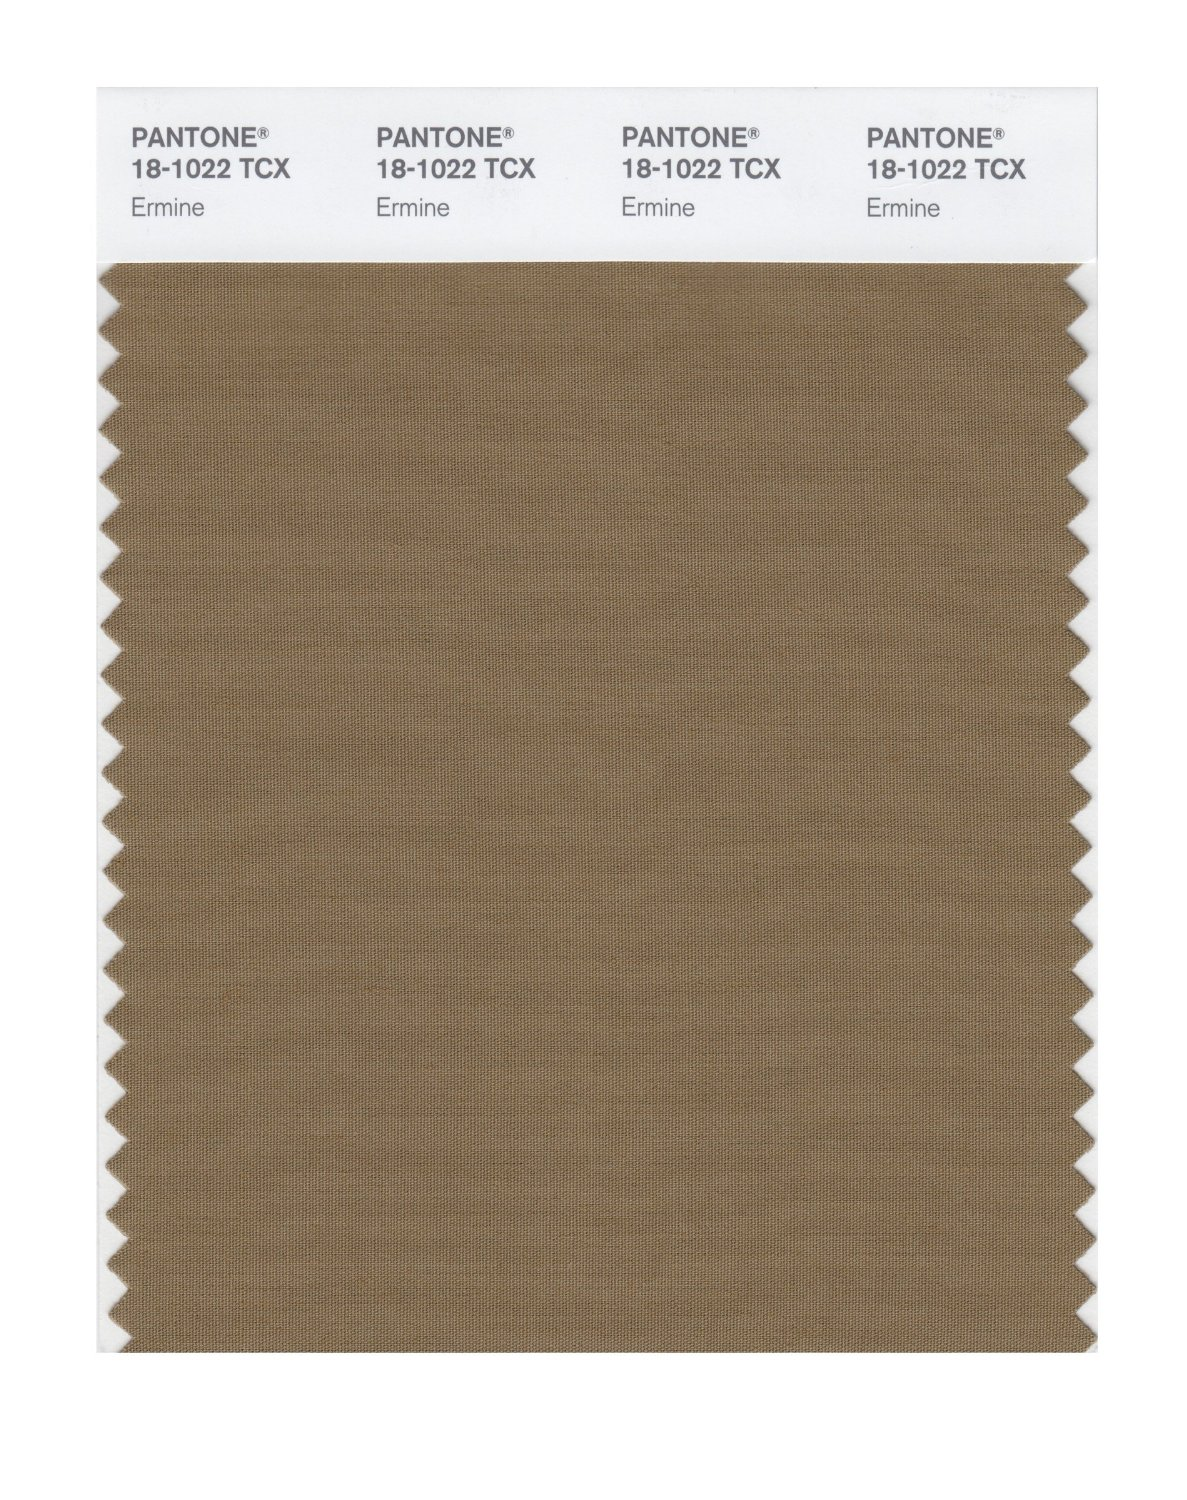 Pantone Smart Swatch 18-1022 Ermine